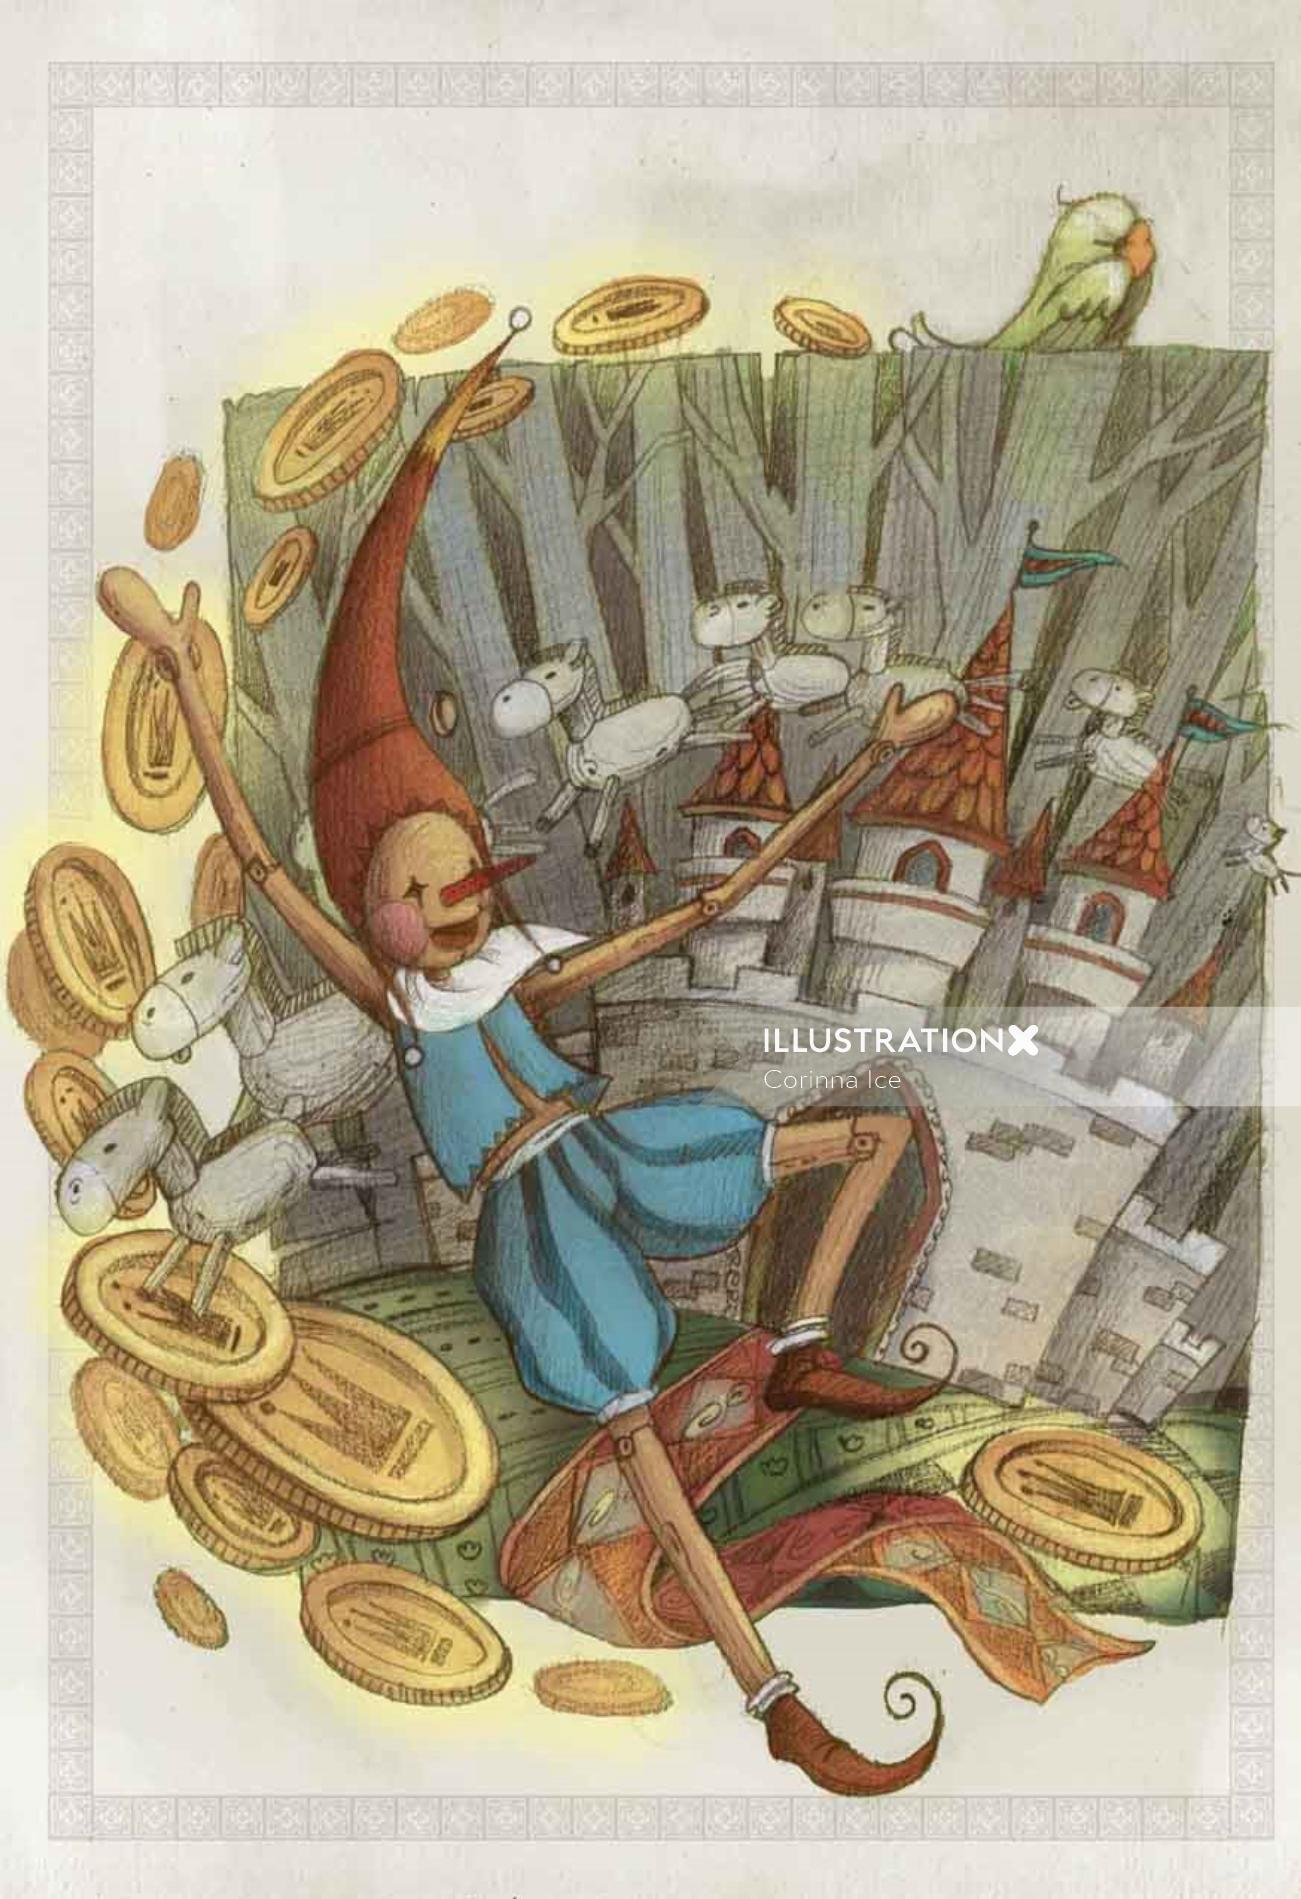 Character design of Pinocchio